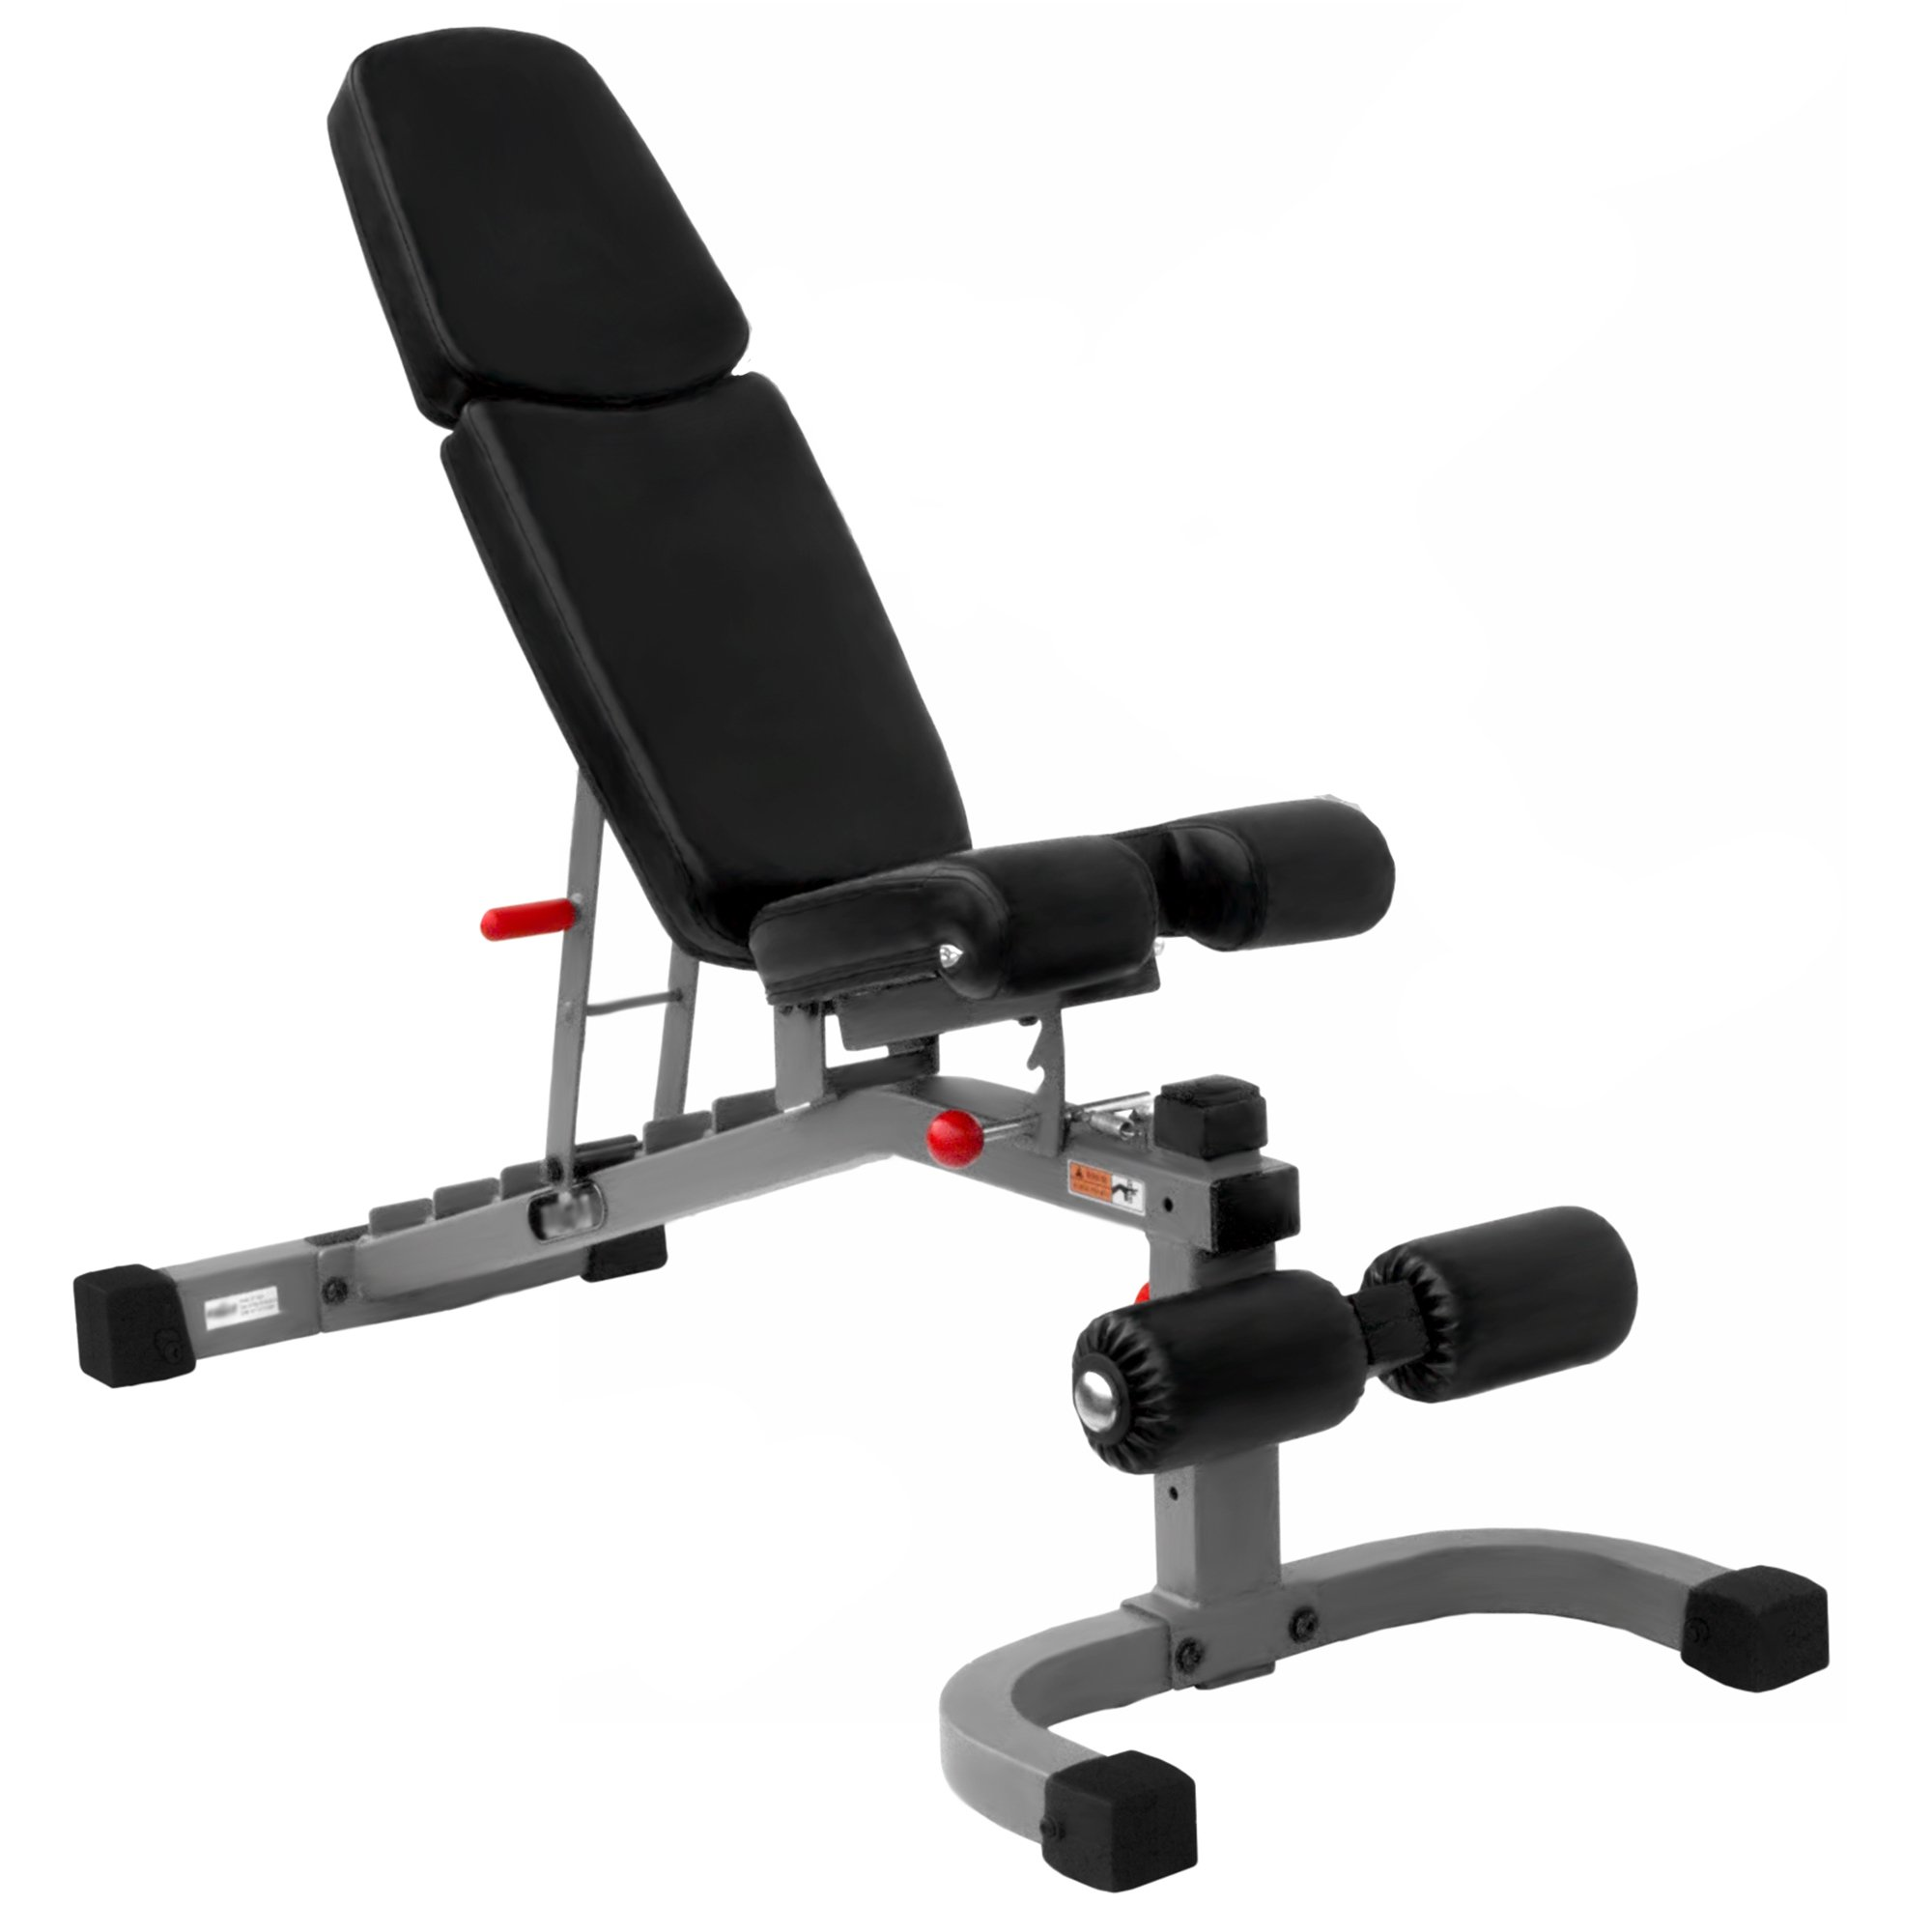 incline adjustable fitness lb titan itm flat rated weight inbench bench capacity